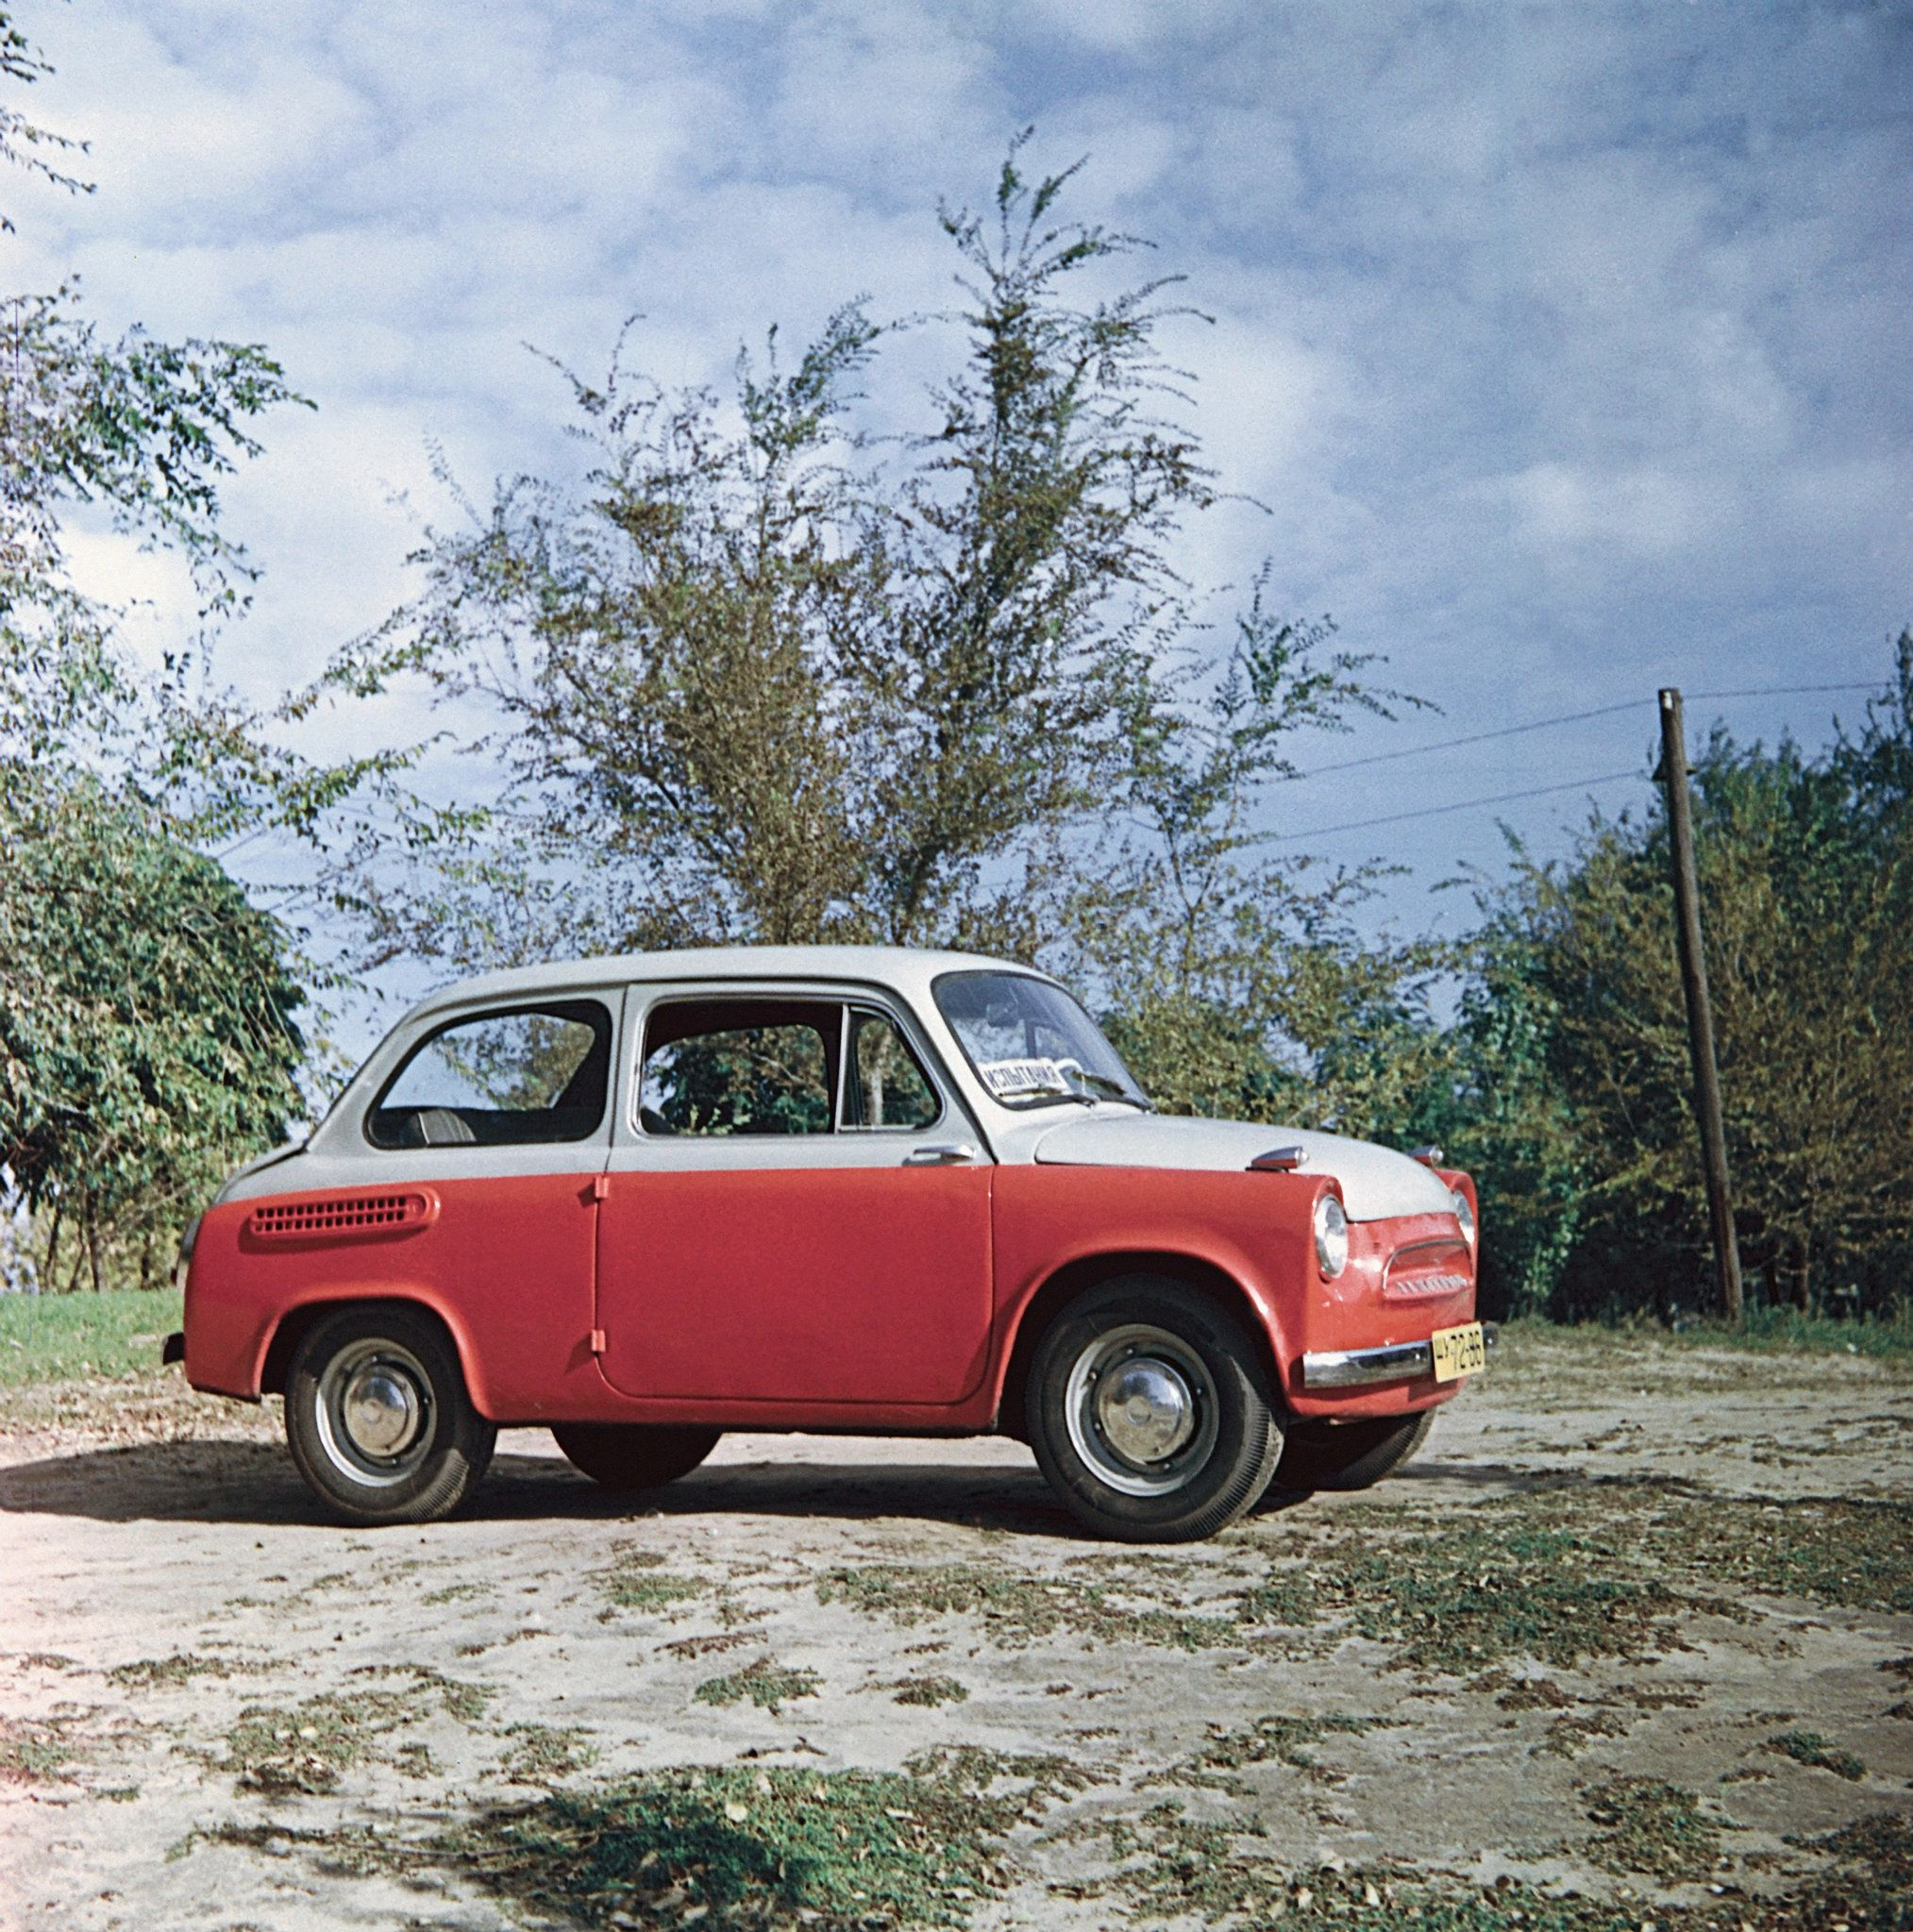 The first cars in Russia